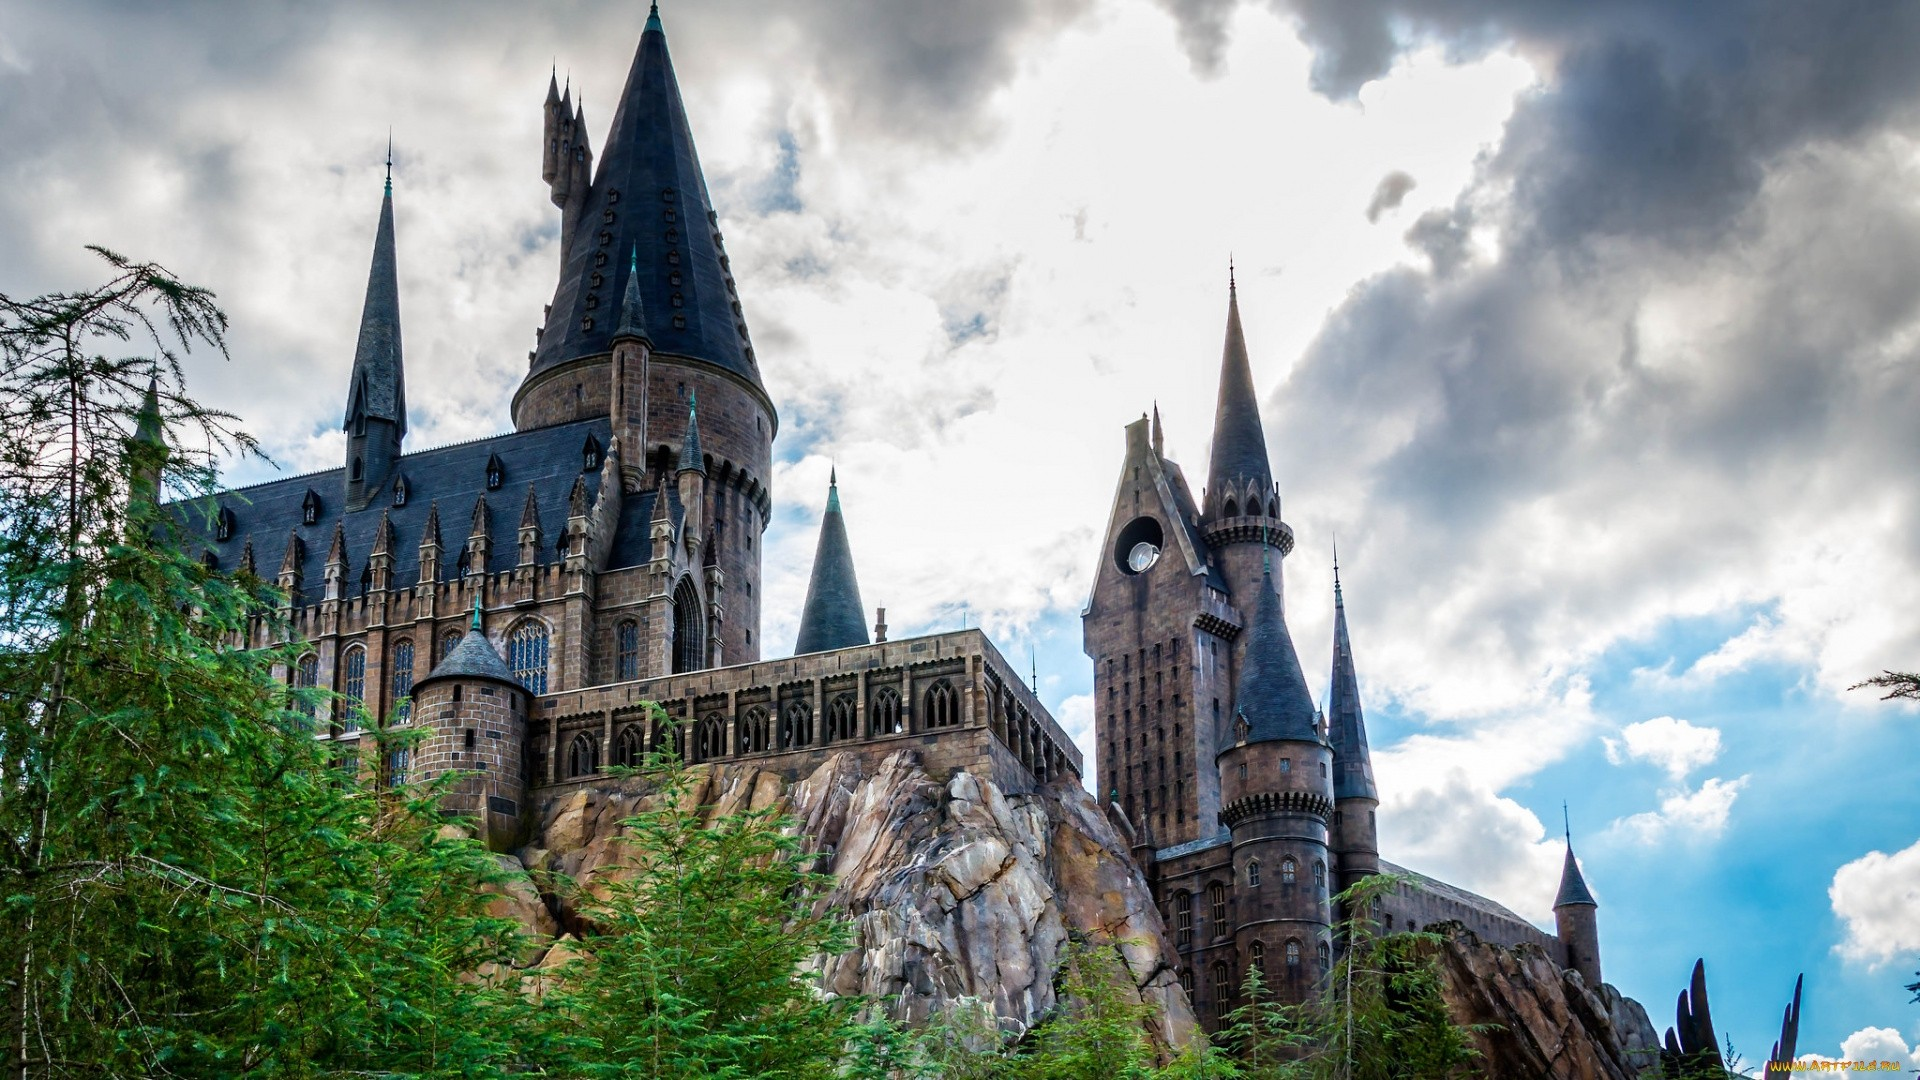 Hogwarts Wallpaper image hd